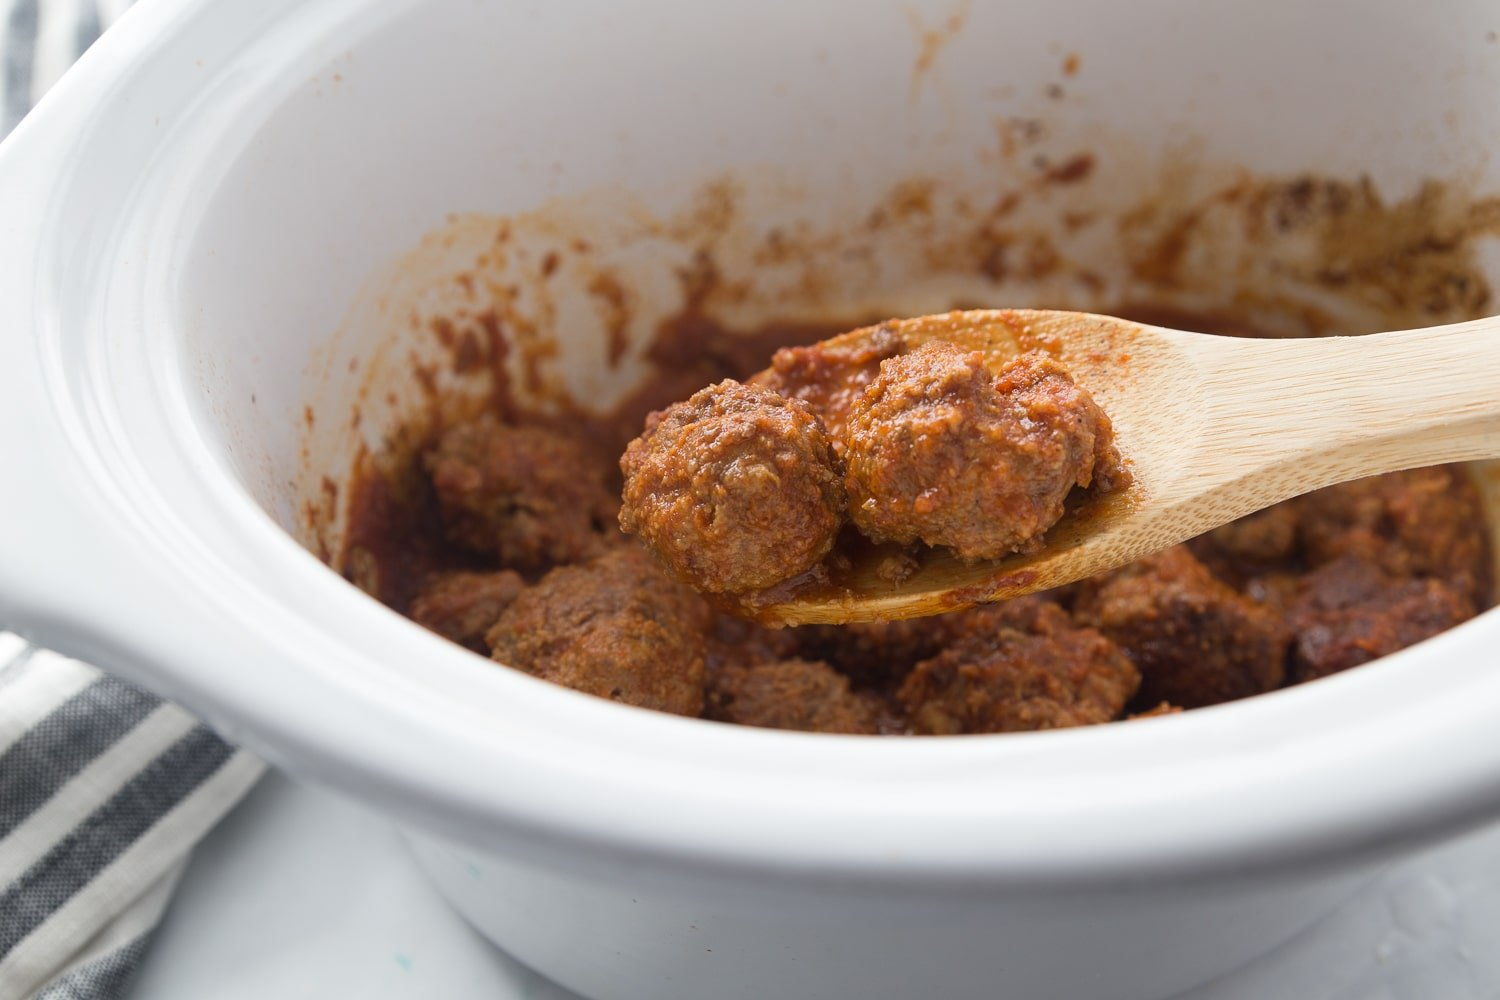 meatballs coated in bbq sauce in a crock-pot with a large wooden spoon scooping the out